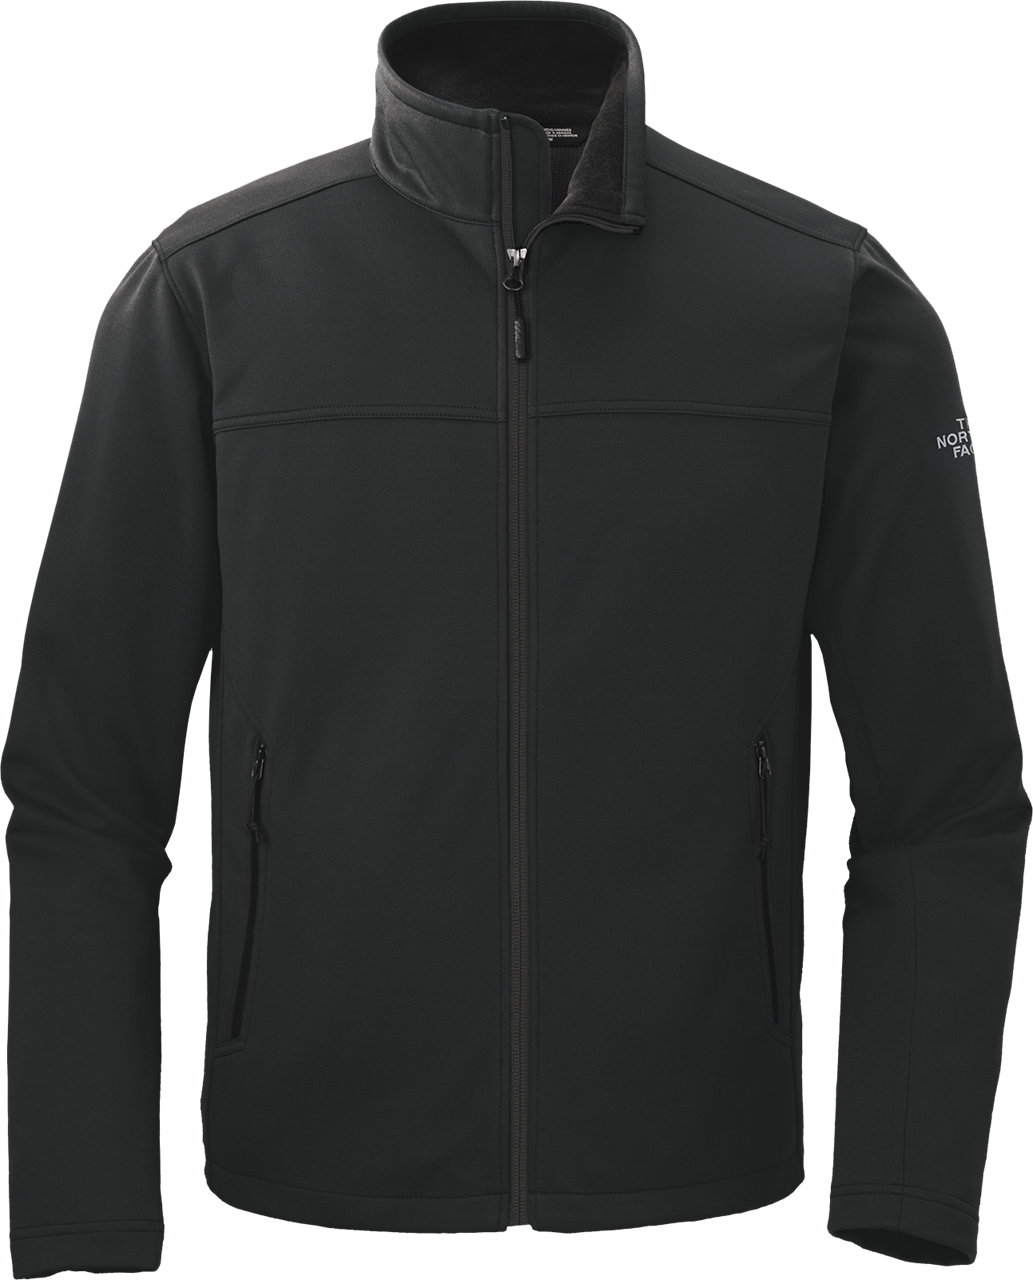 Picture of NORTH FACE Men's Ridgeline Soft Shell Jacket